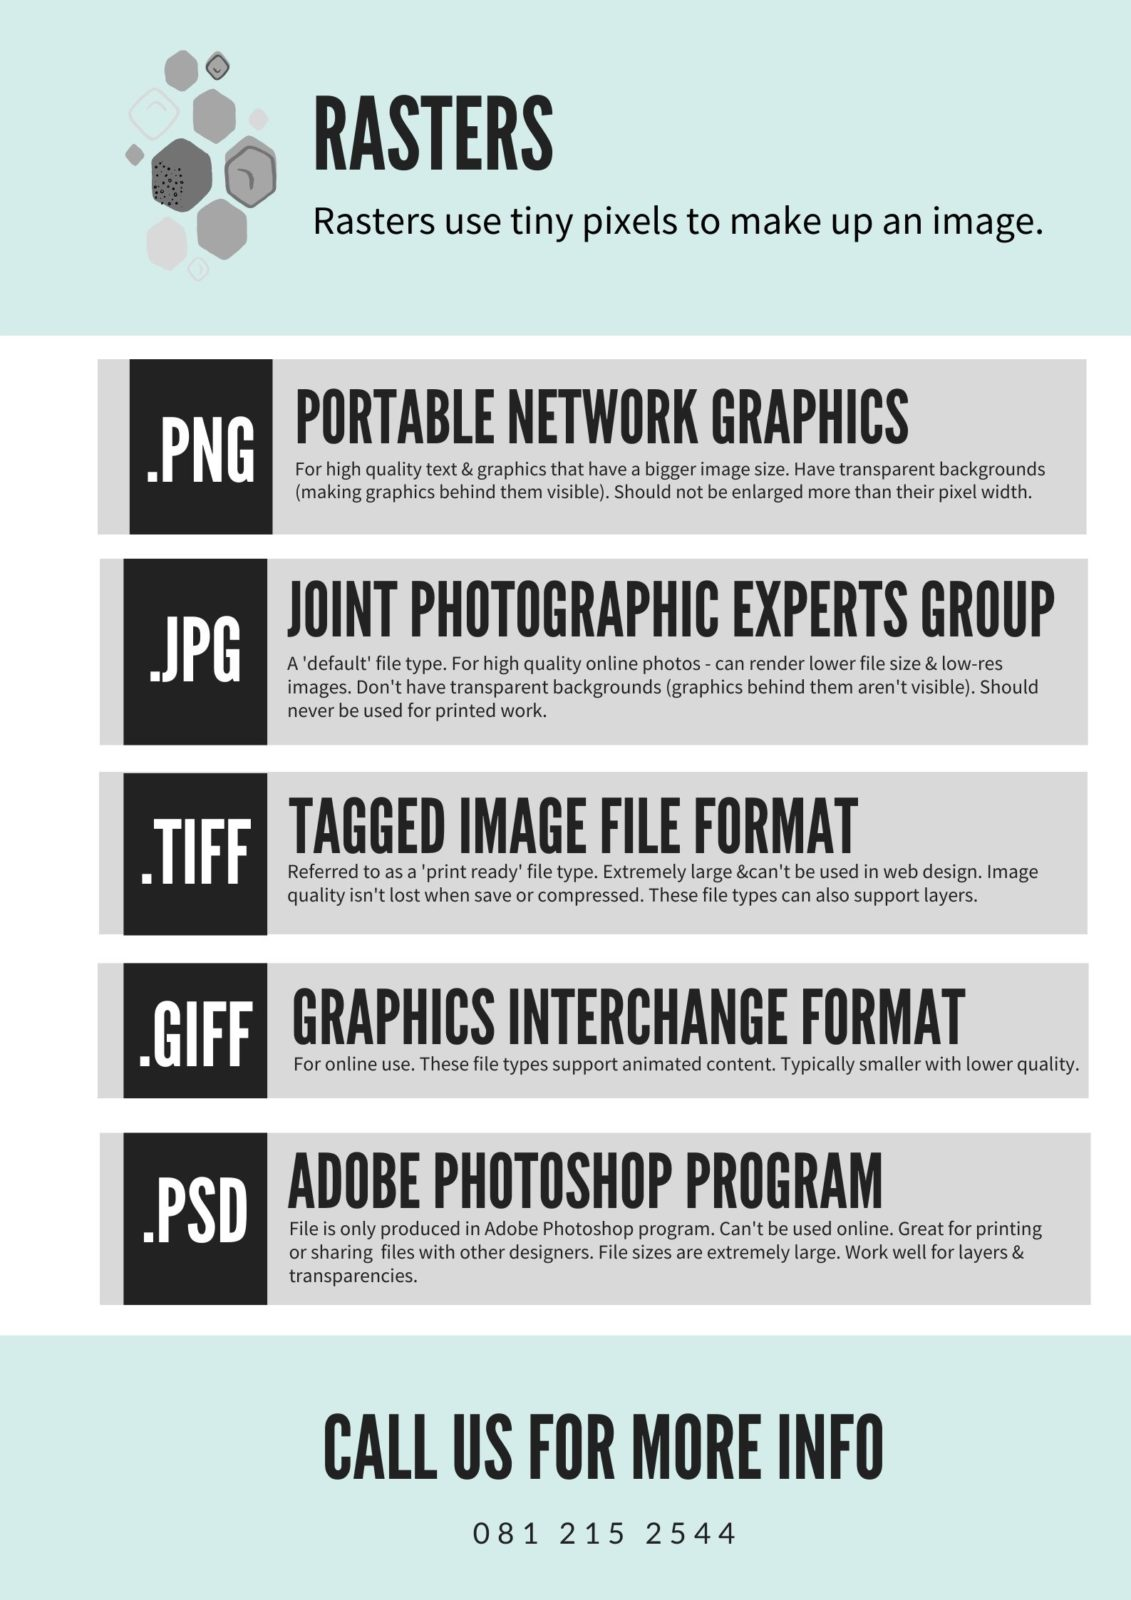 Types of File Formats